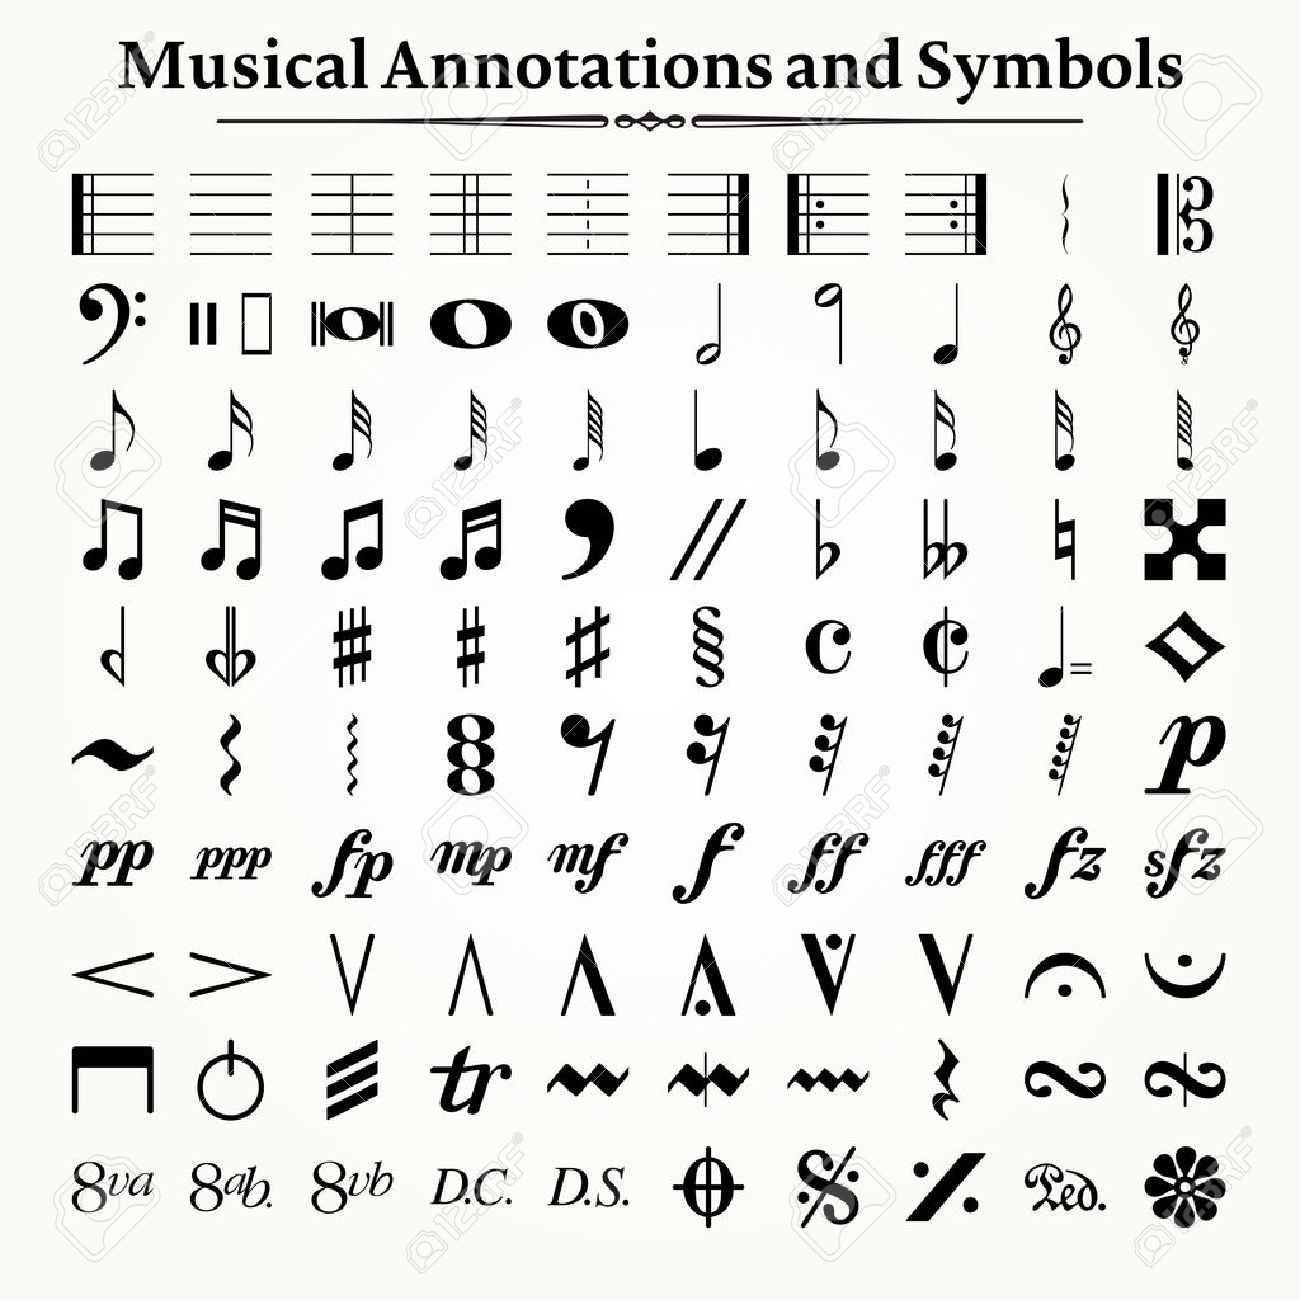 Elements of musical symbols, icons and annotations